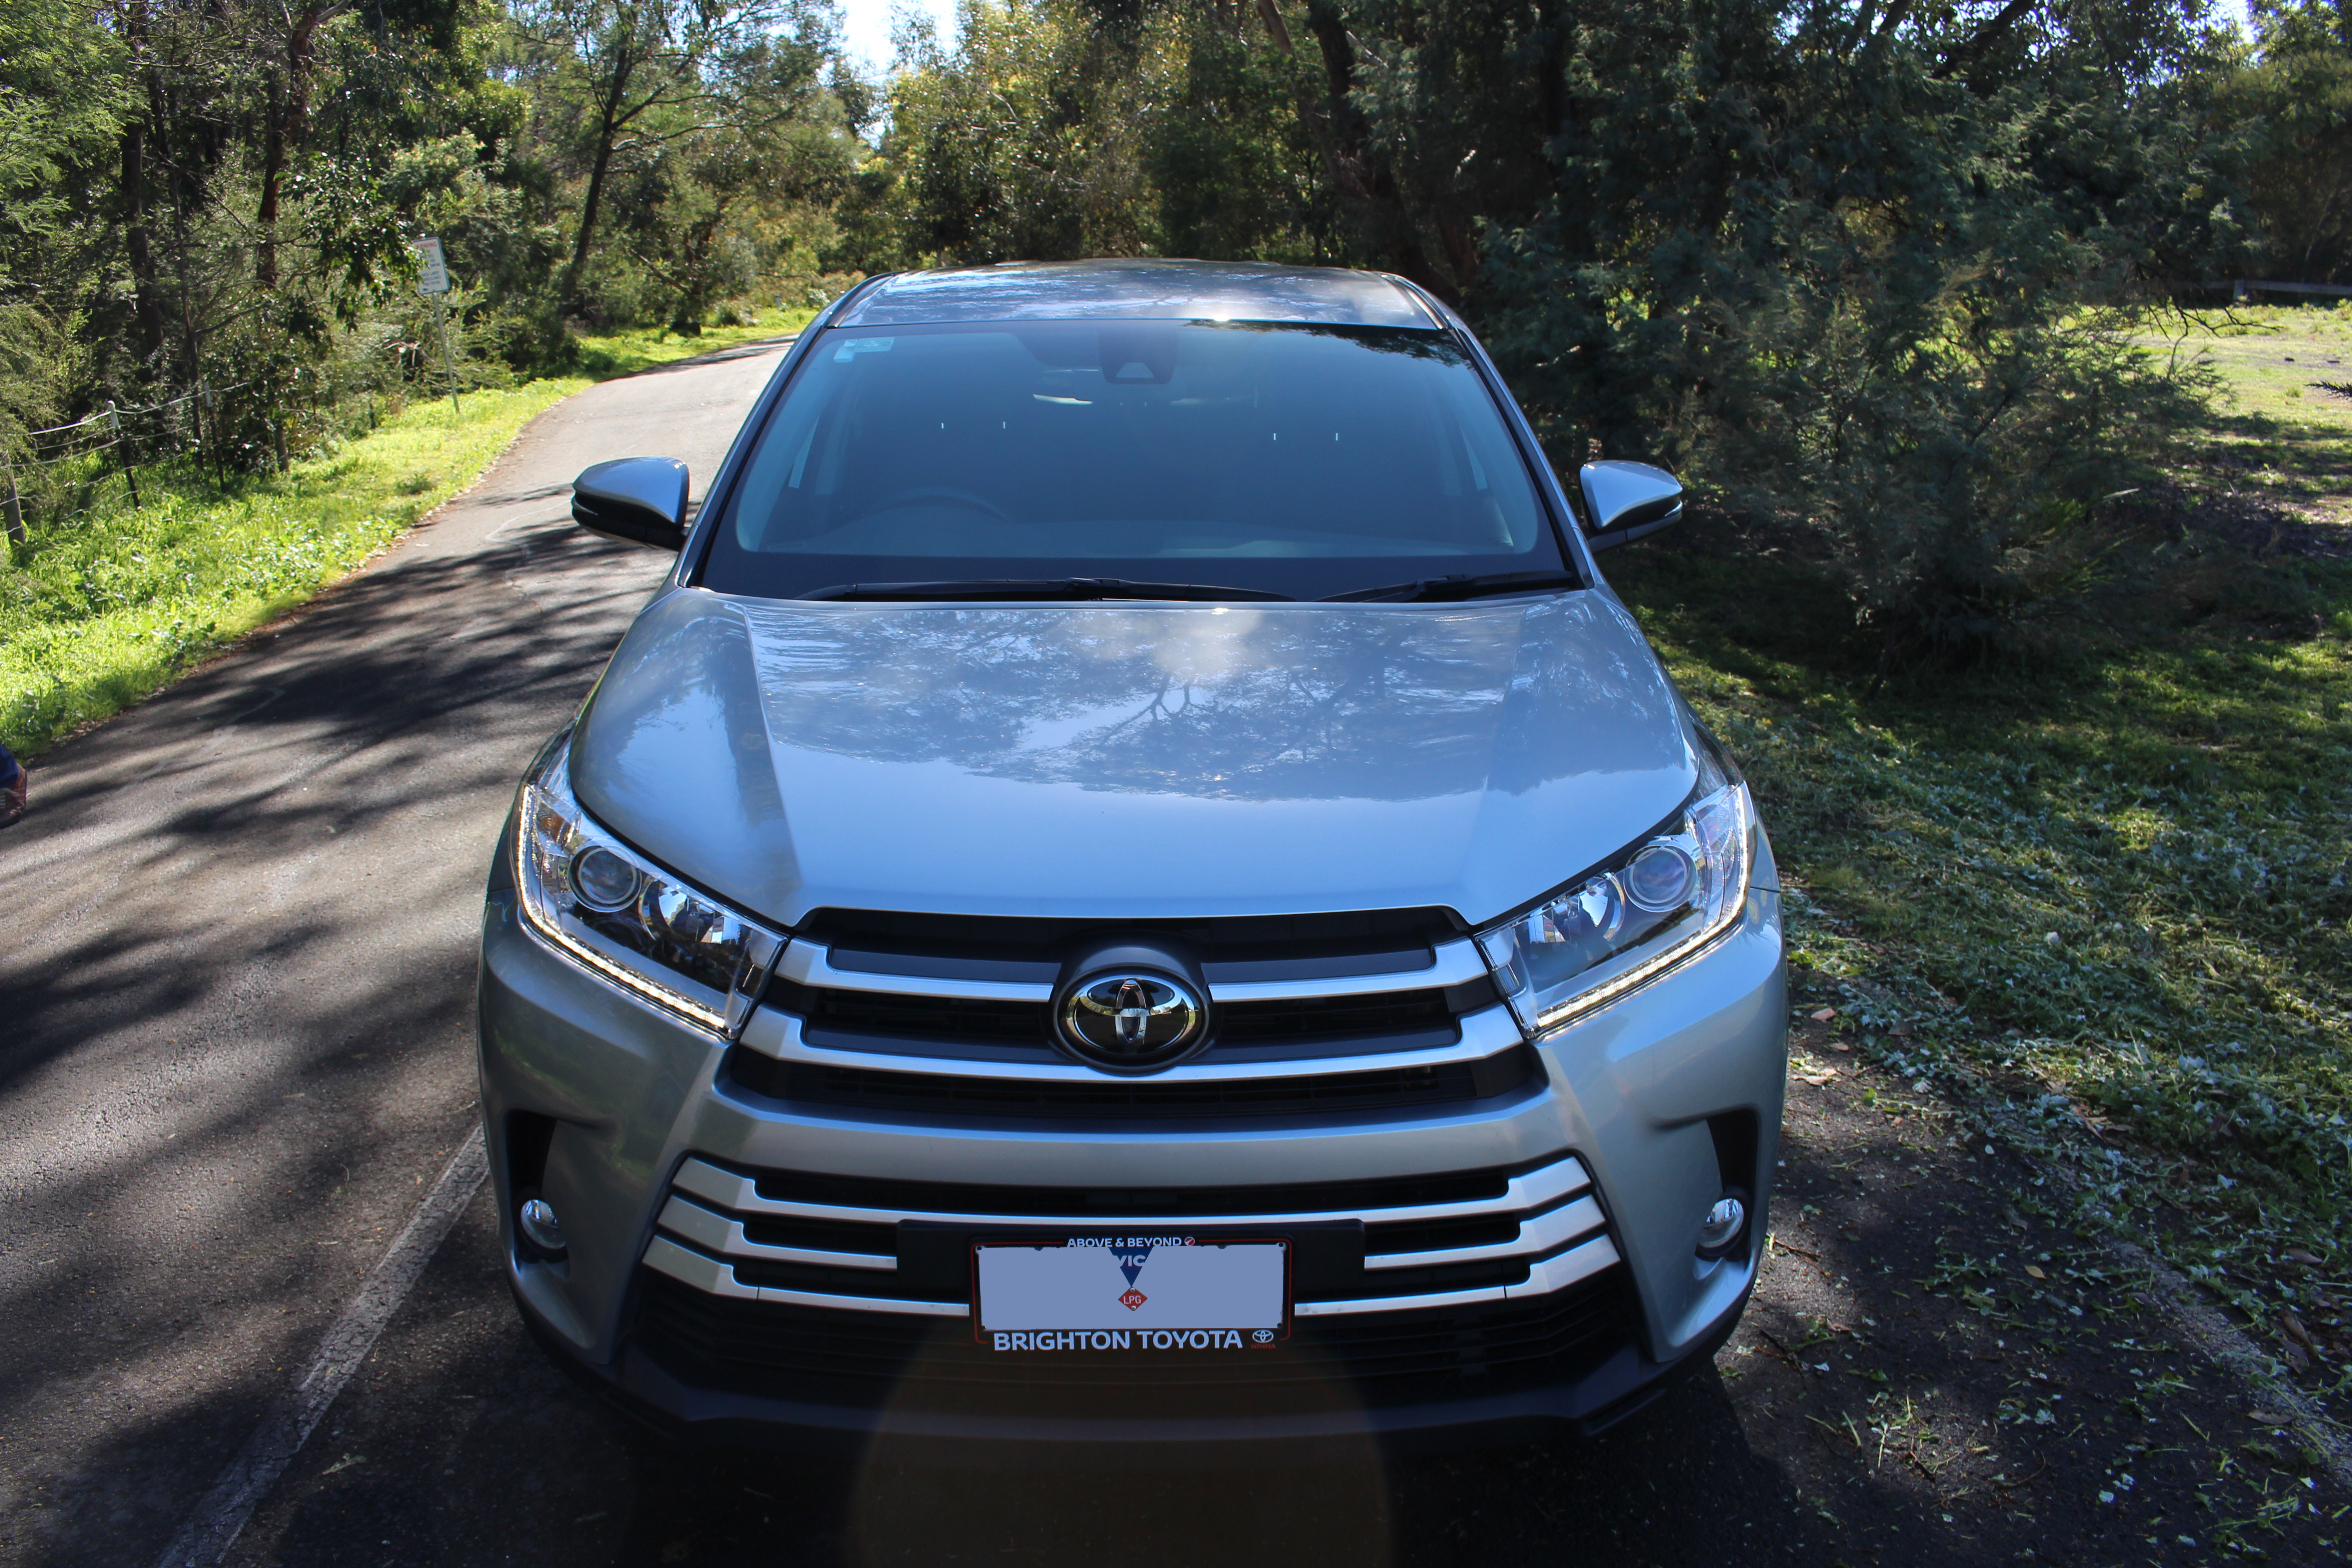 Toyota Kluger on LPG with Prins VSI-2.0 DI LPG system (MPI and DI in one) for Australian Taxi fleets now available